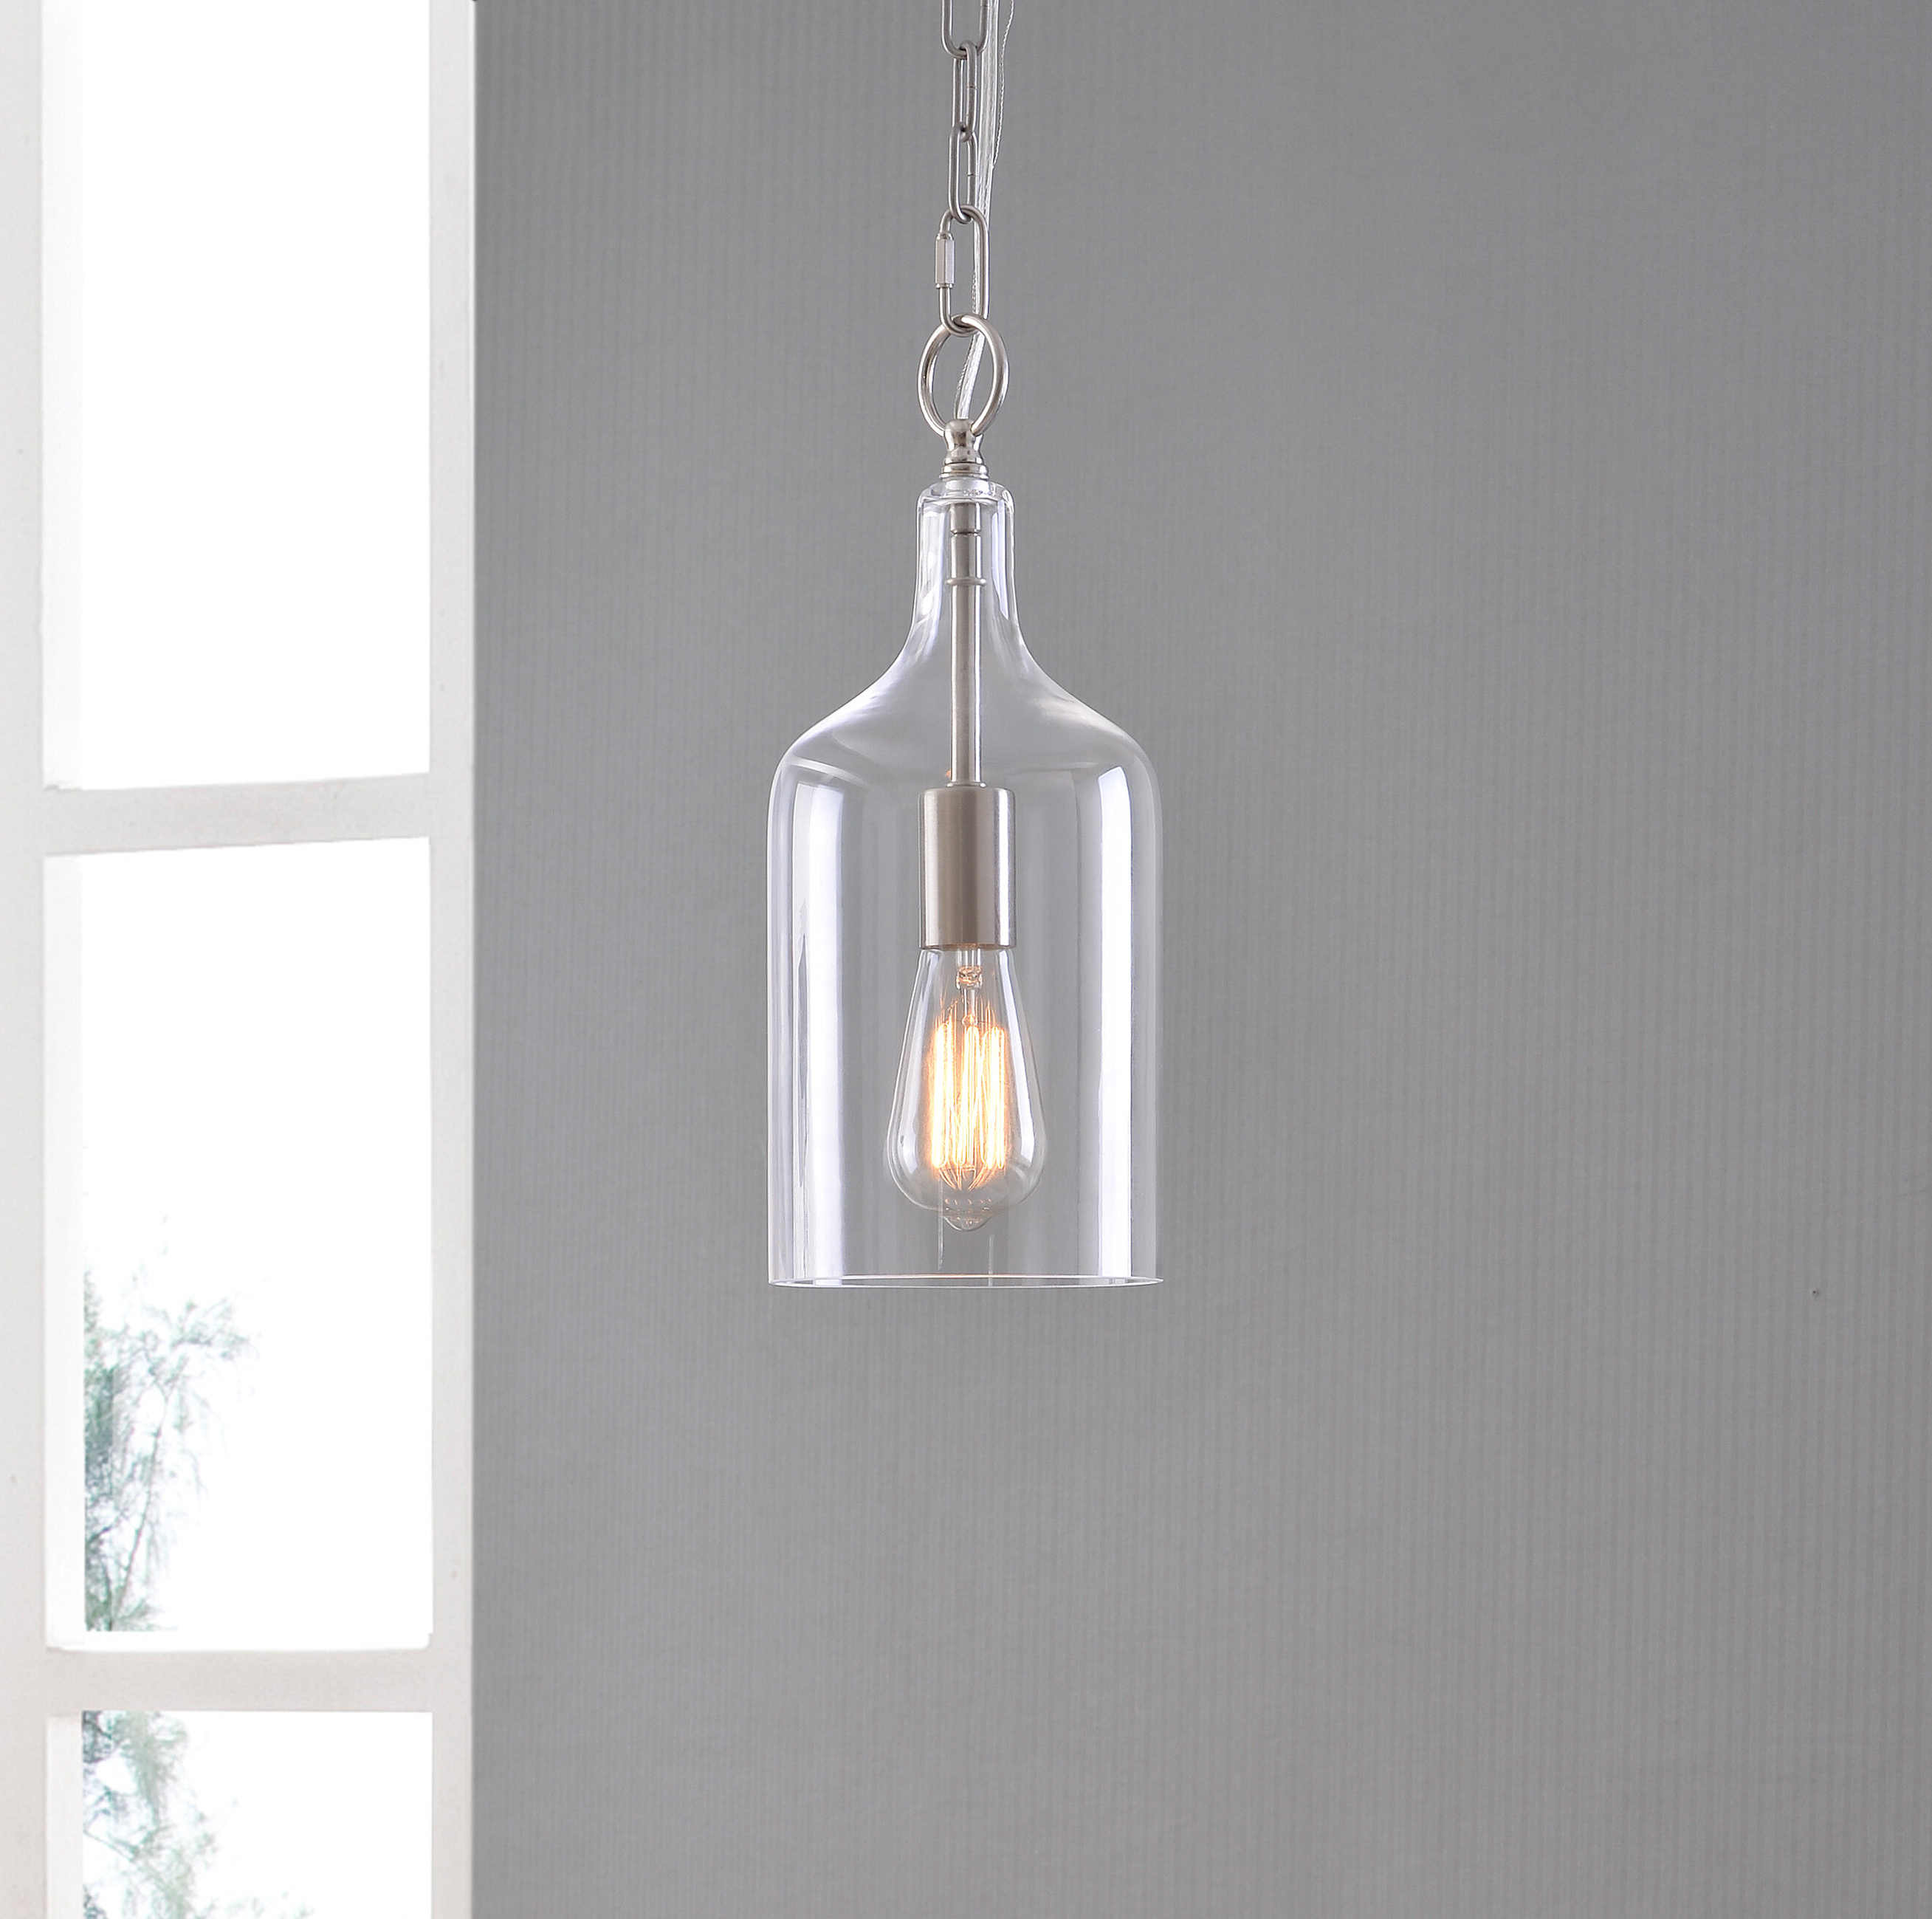 Best And Newest Sussex 1 Light Single Geometric Pendants For Clematite 1 Light Geometric Pendant (View 4 of 20)